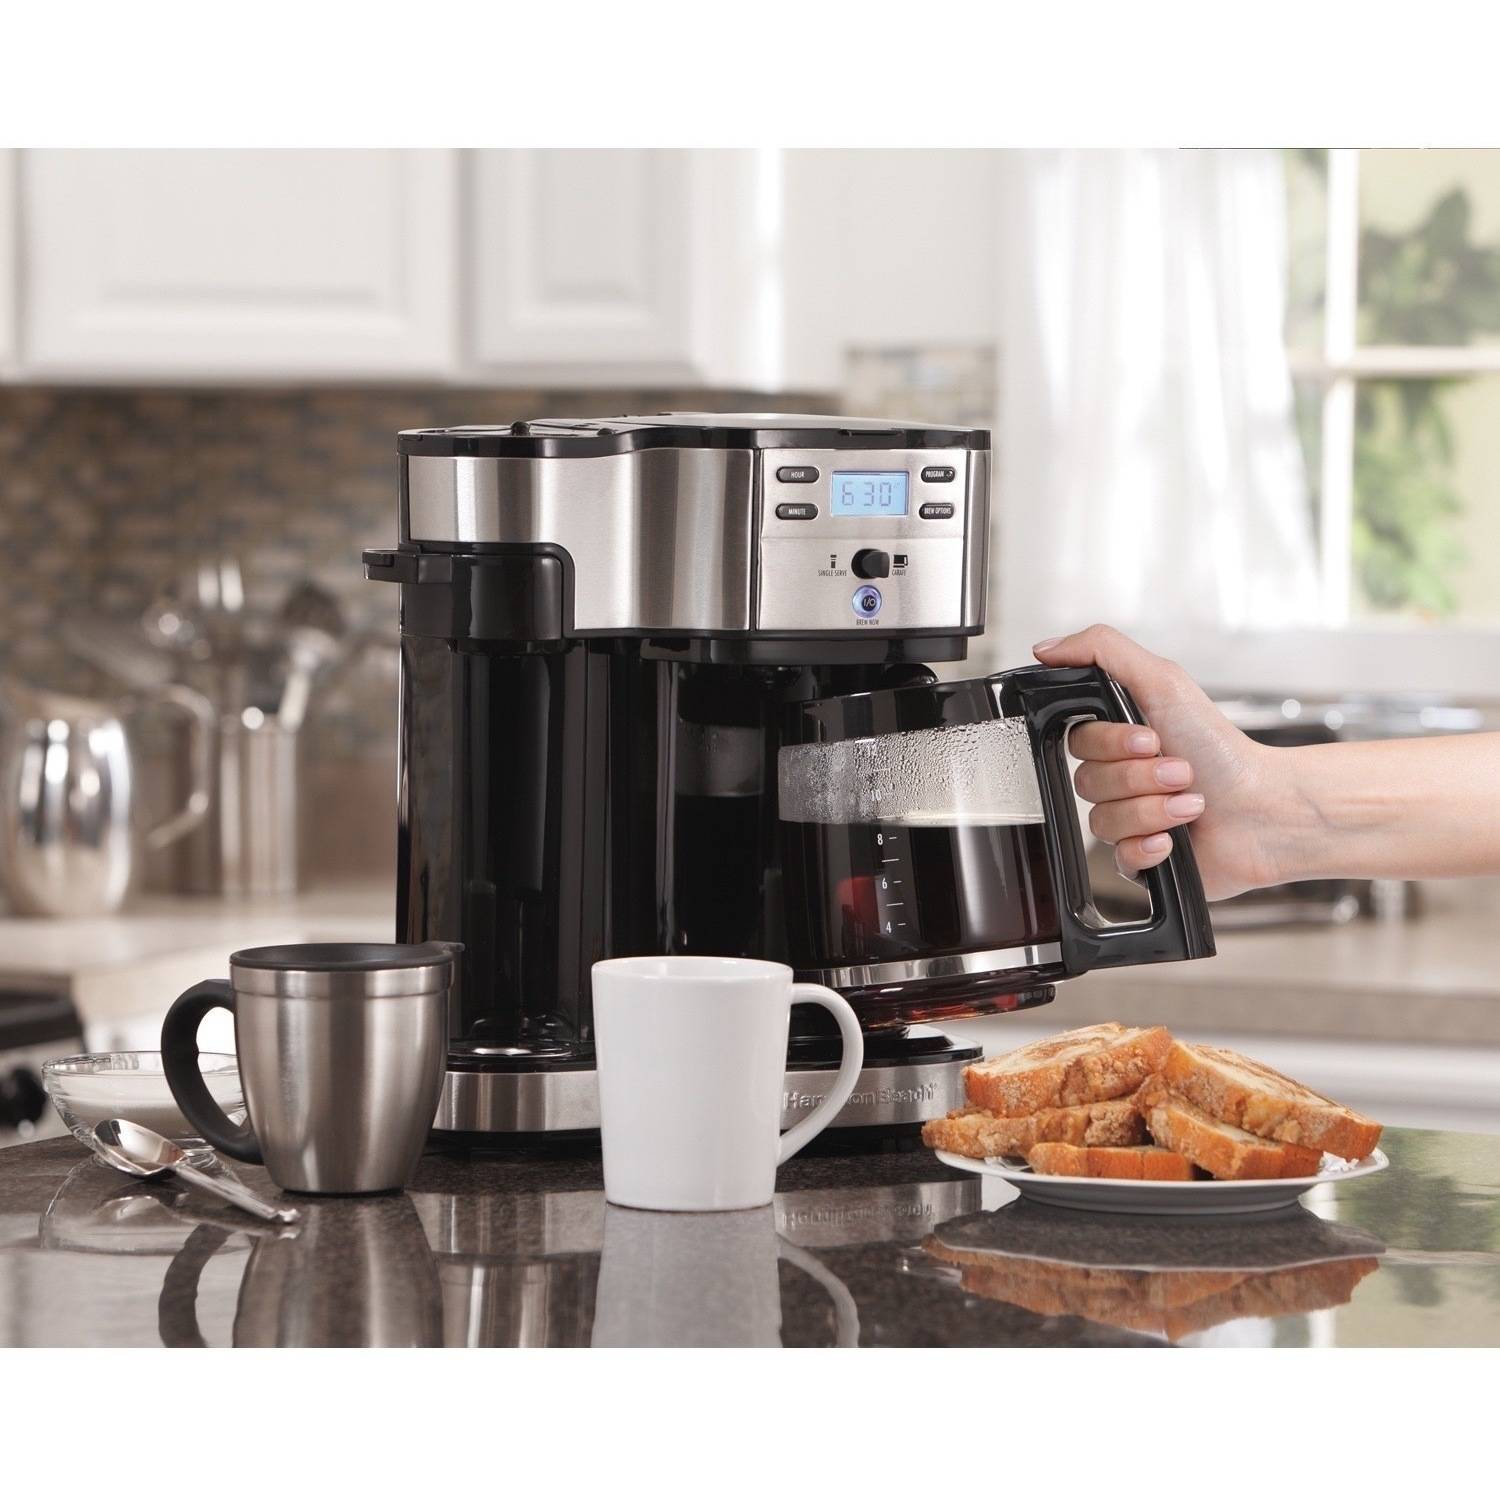 Hamilton Beach 2 Way Brewer Model 49980z Walmartcom